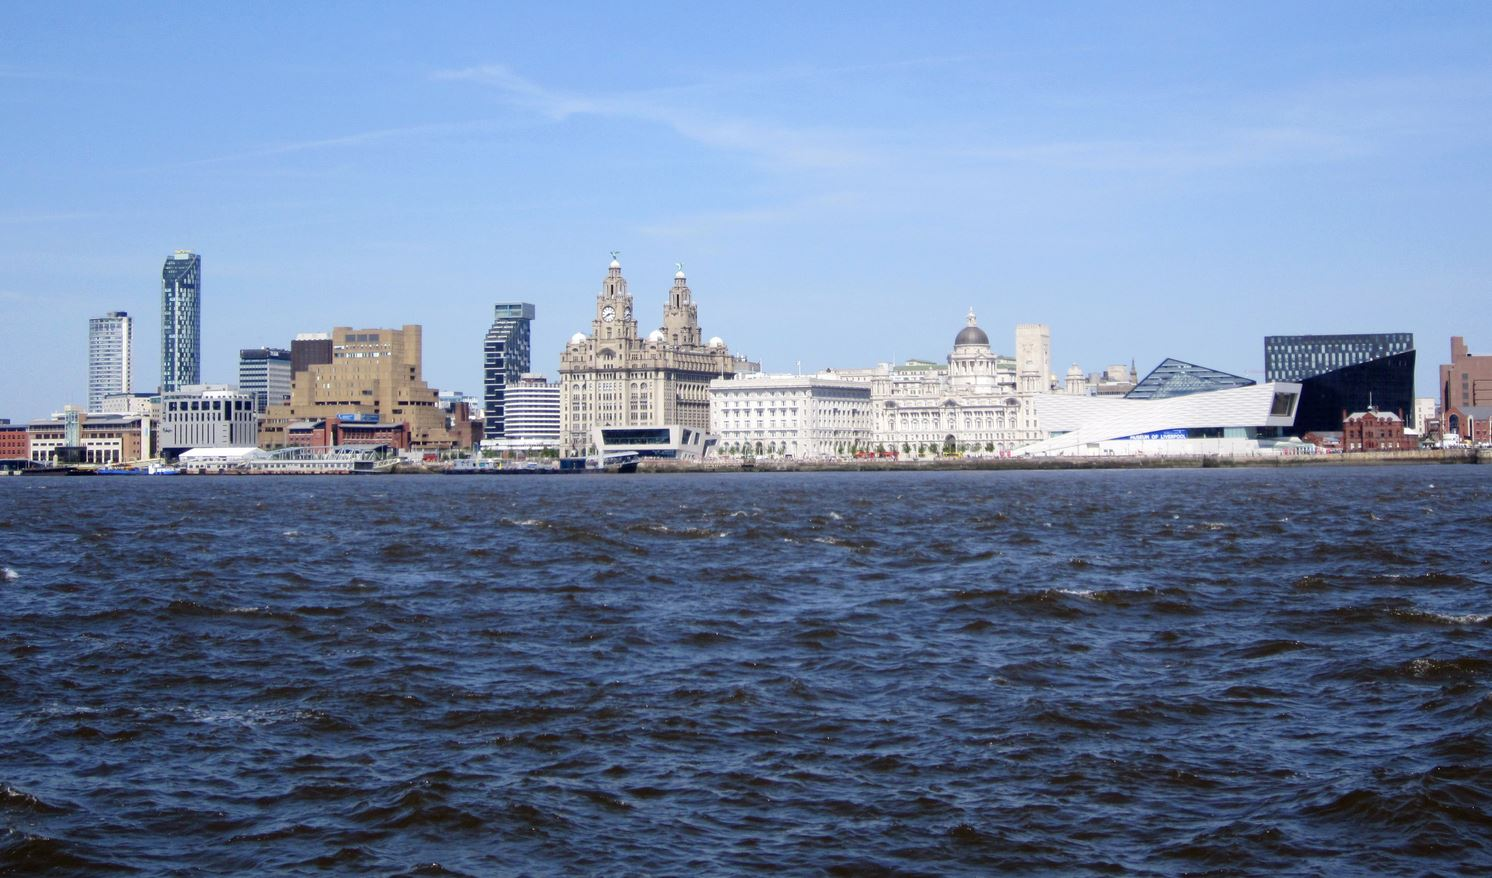 Viewsof Liverpool across the River Mersey